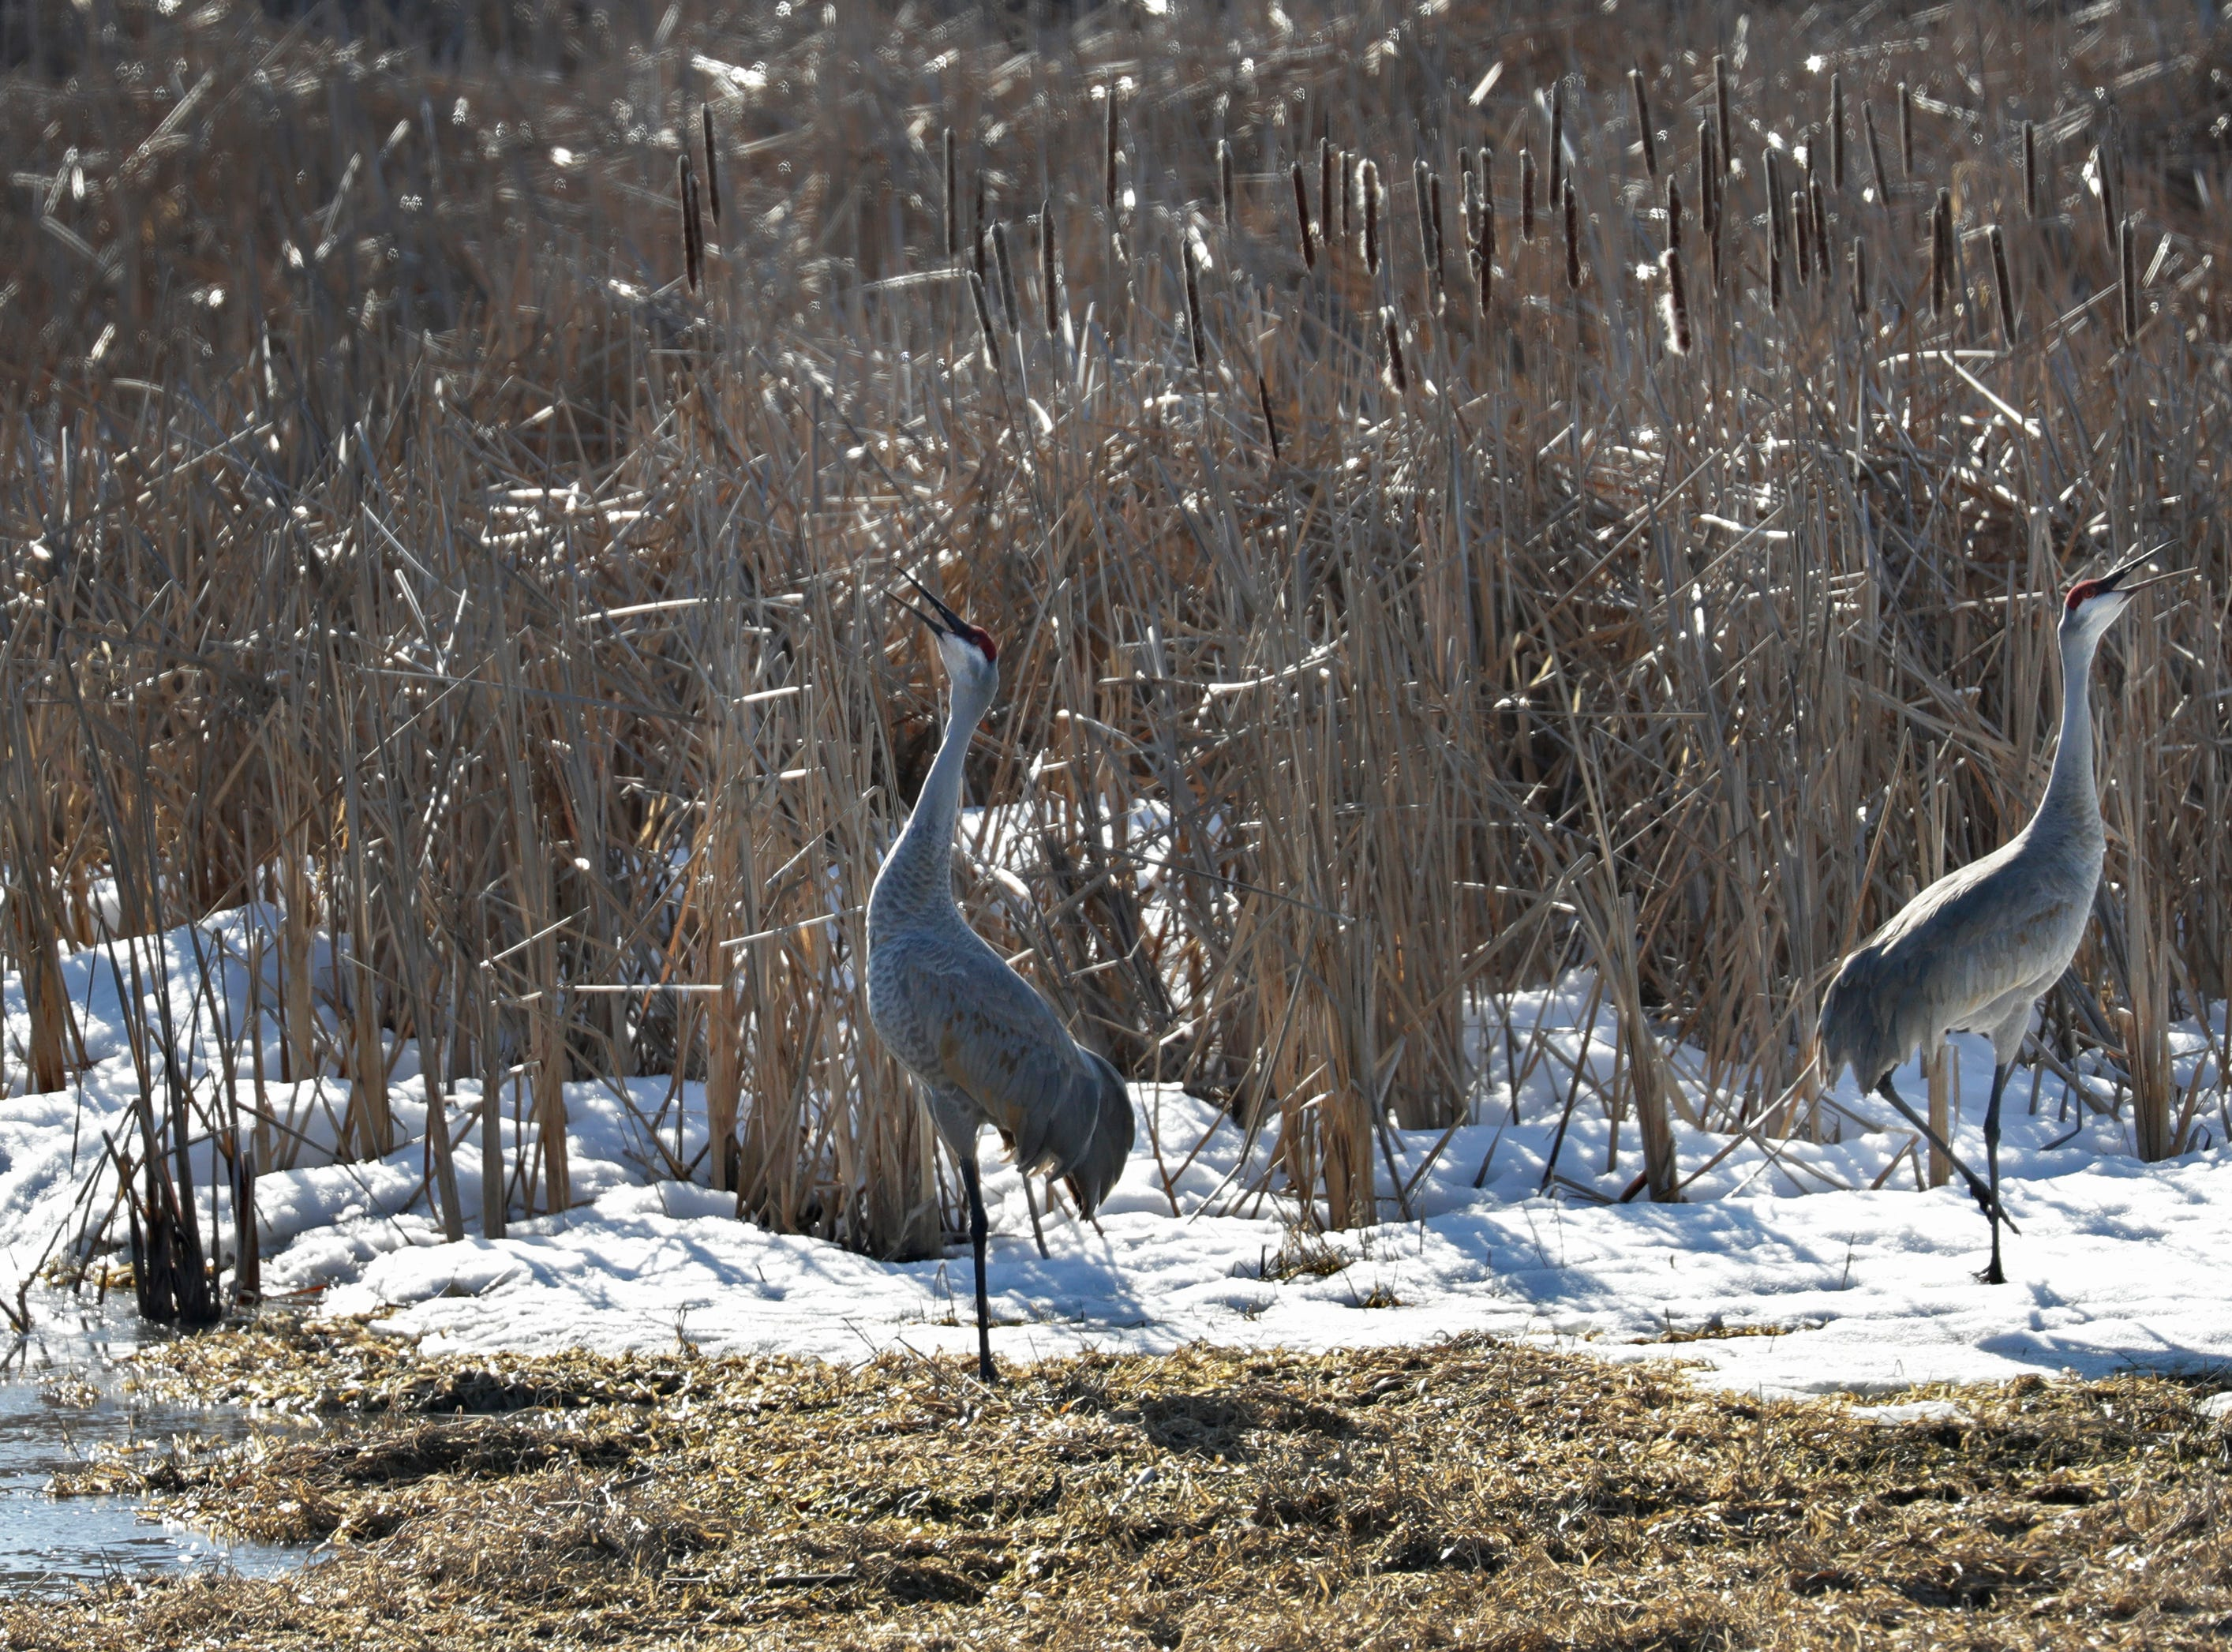 Sandhill cranes make loud bugling sounds near Butte Des Morts Beach Road Tuesday, March 19, 2019, in Fox Crossing, Wis. Dan Powers/USA TODAY NETWORK-Wisconsin